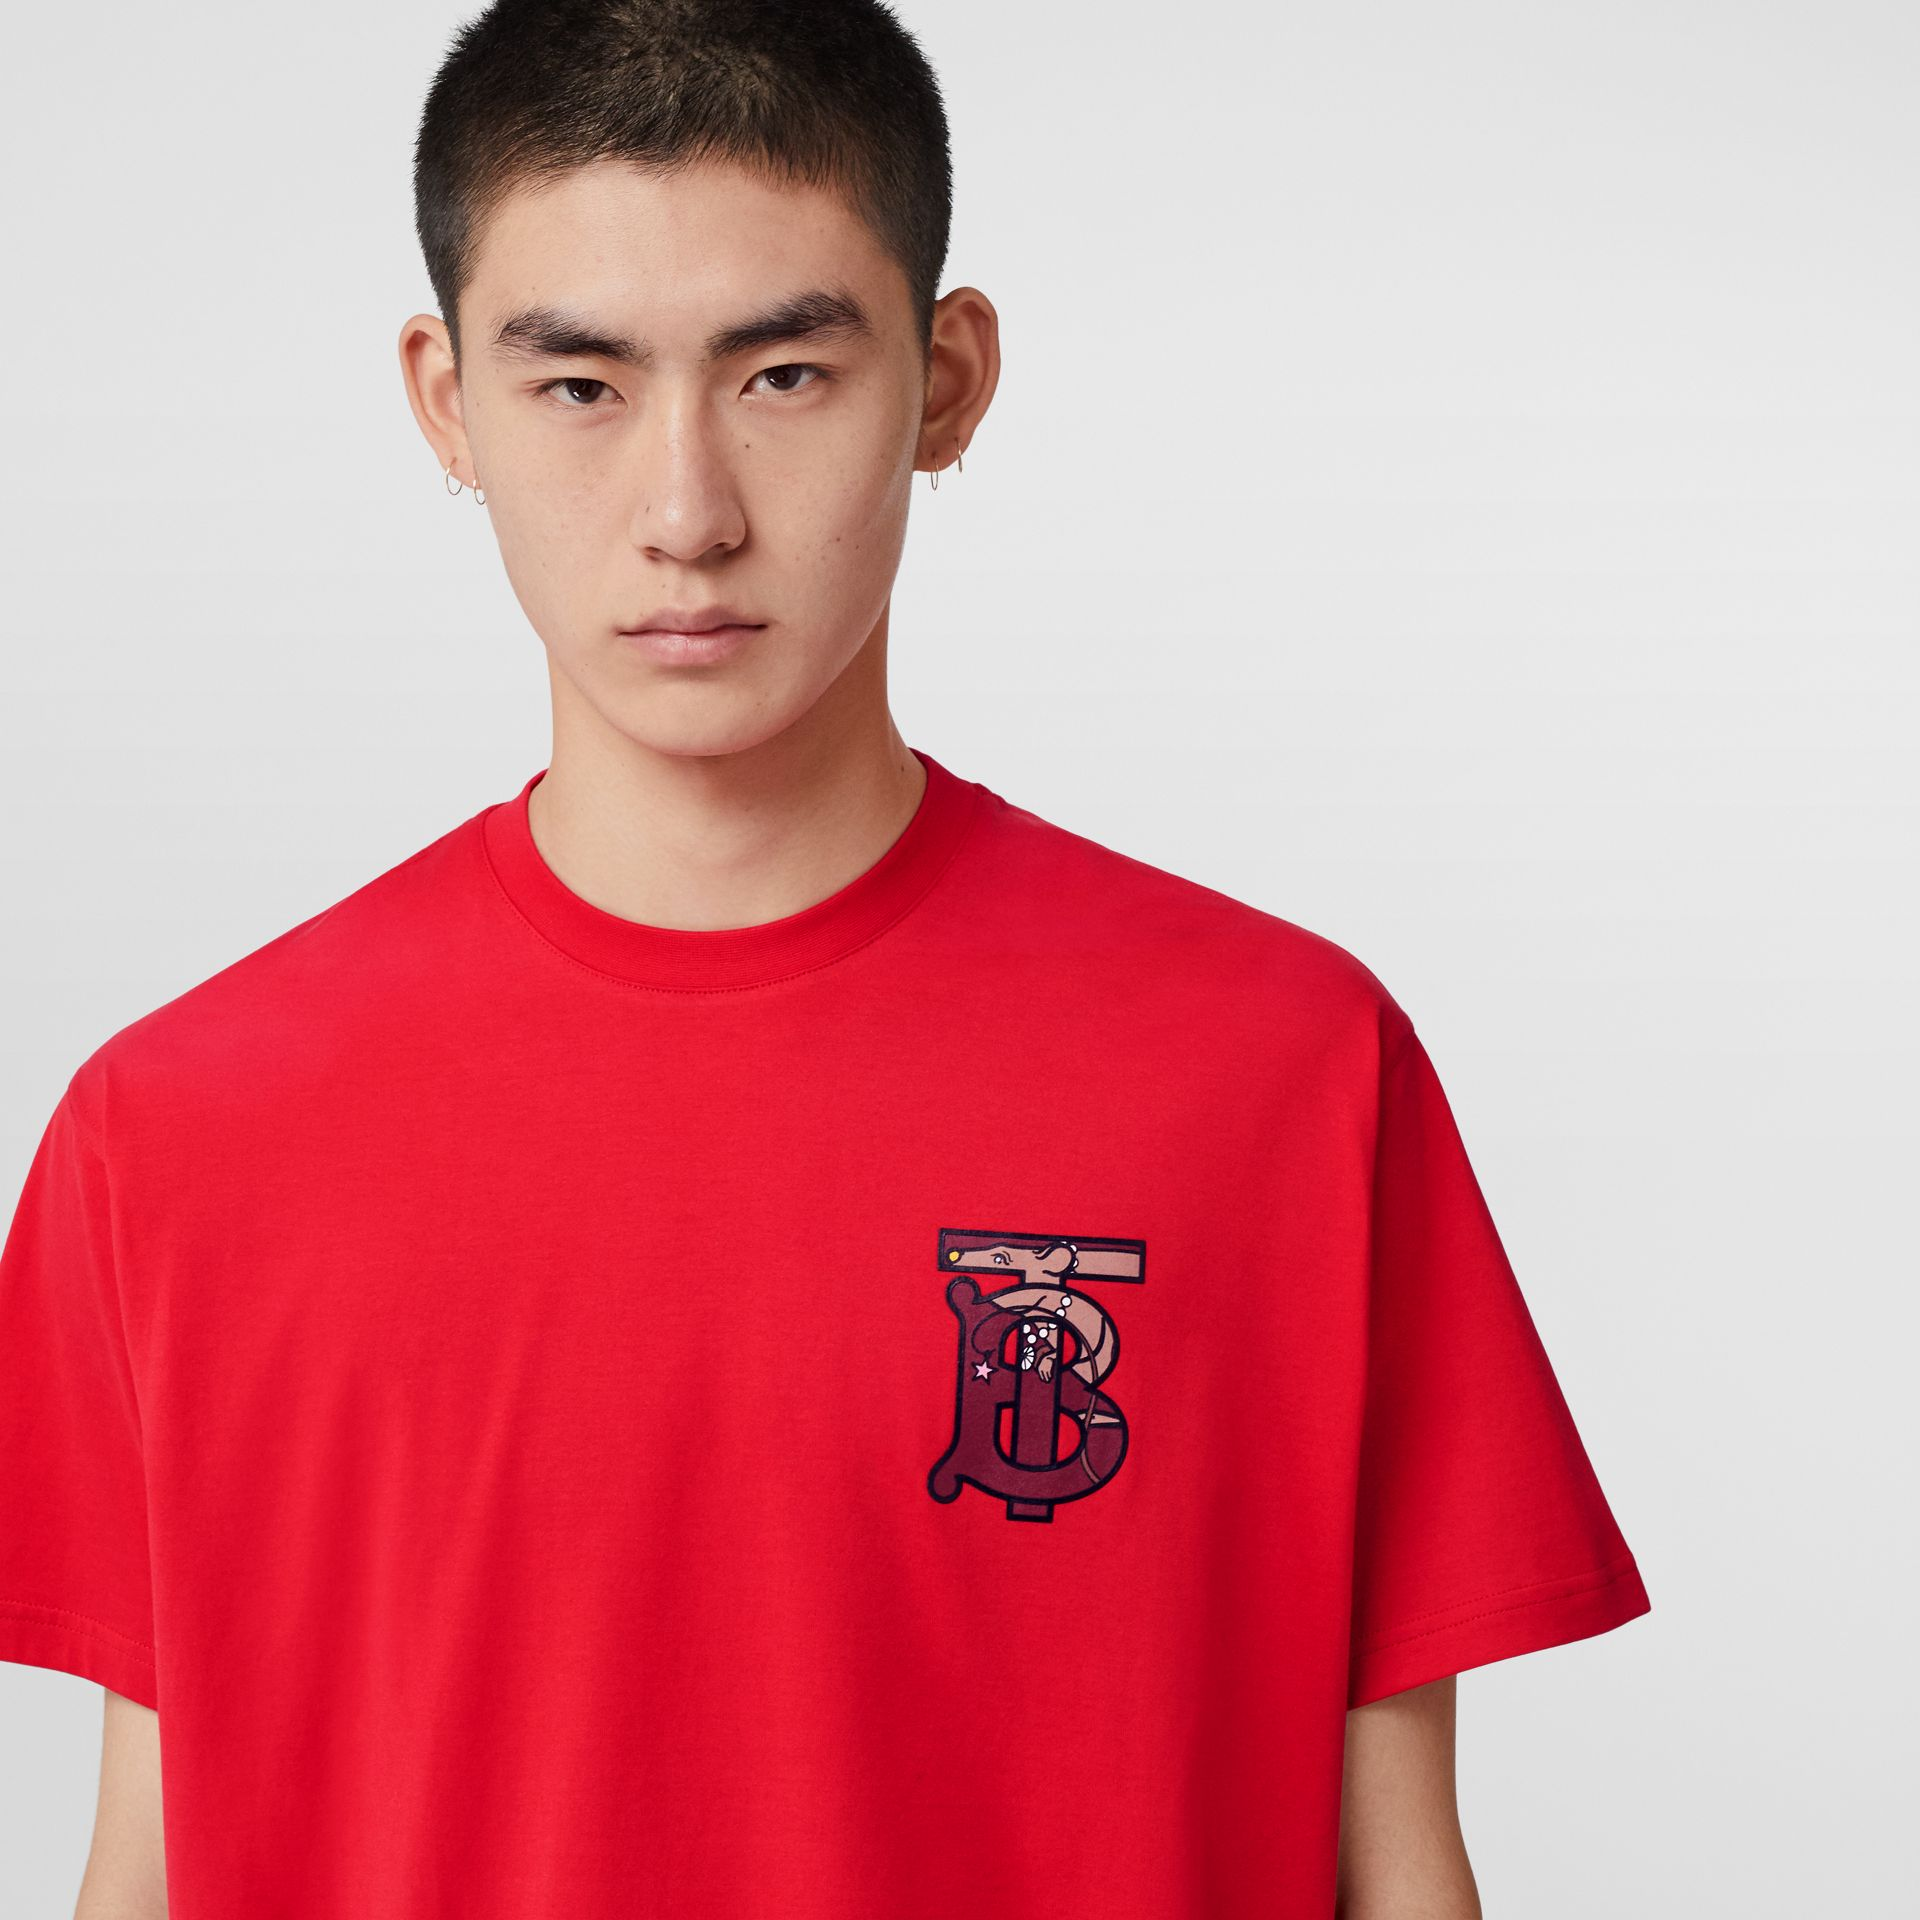 Monogram Motif Cotton Oversized T-shirt in Racing Red - Men | Burberry United Kingdom - gallery image 1